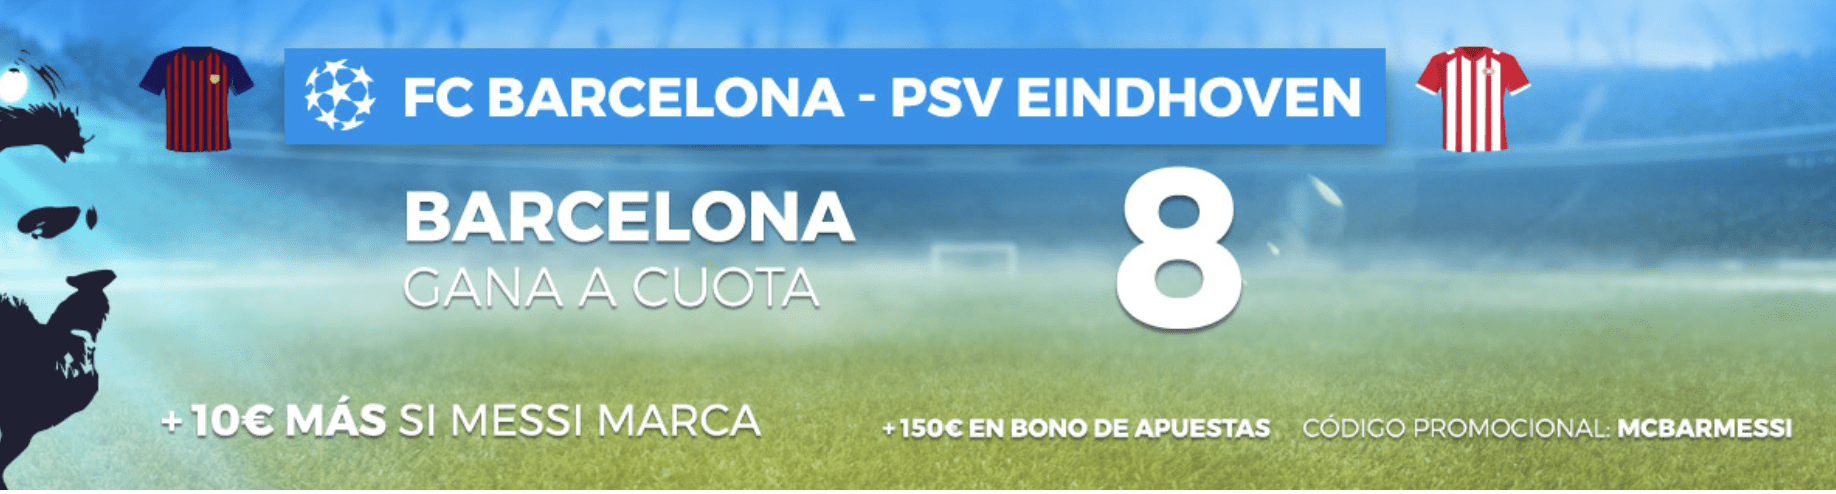 Supercuota paston Champions League PSV - FC Barcelona